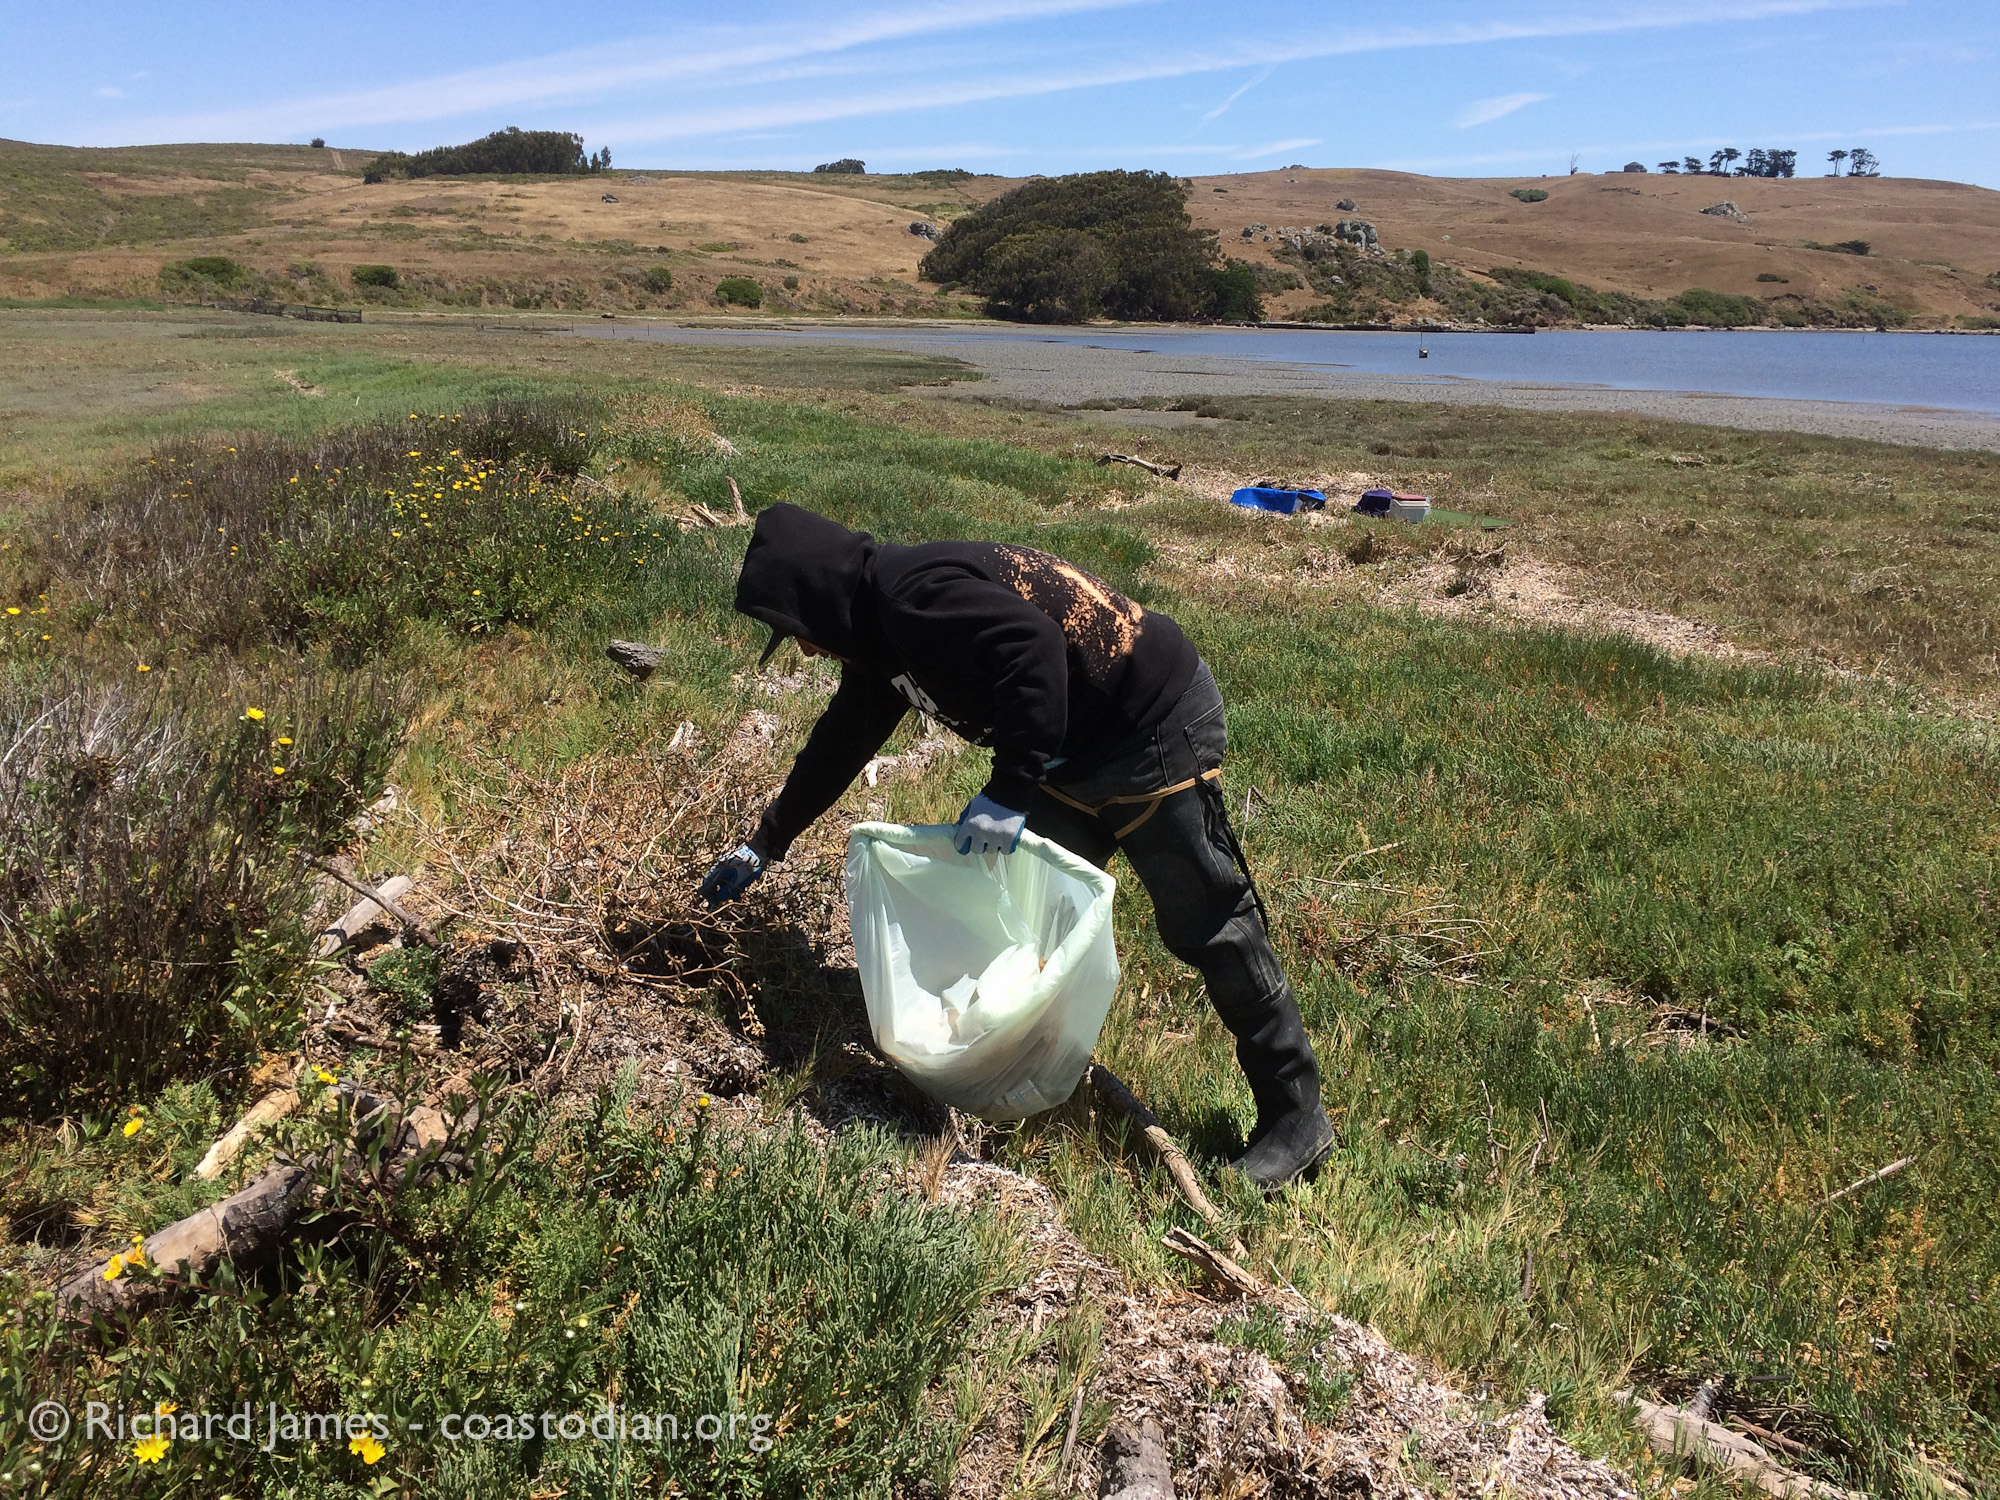 Hog Island Oyster worker on trash patrol, Tom's Point - Tomales Bay